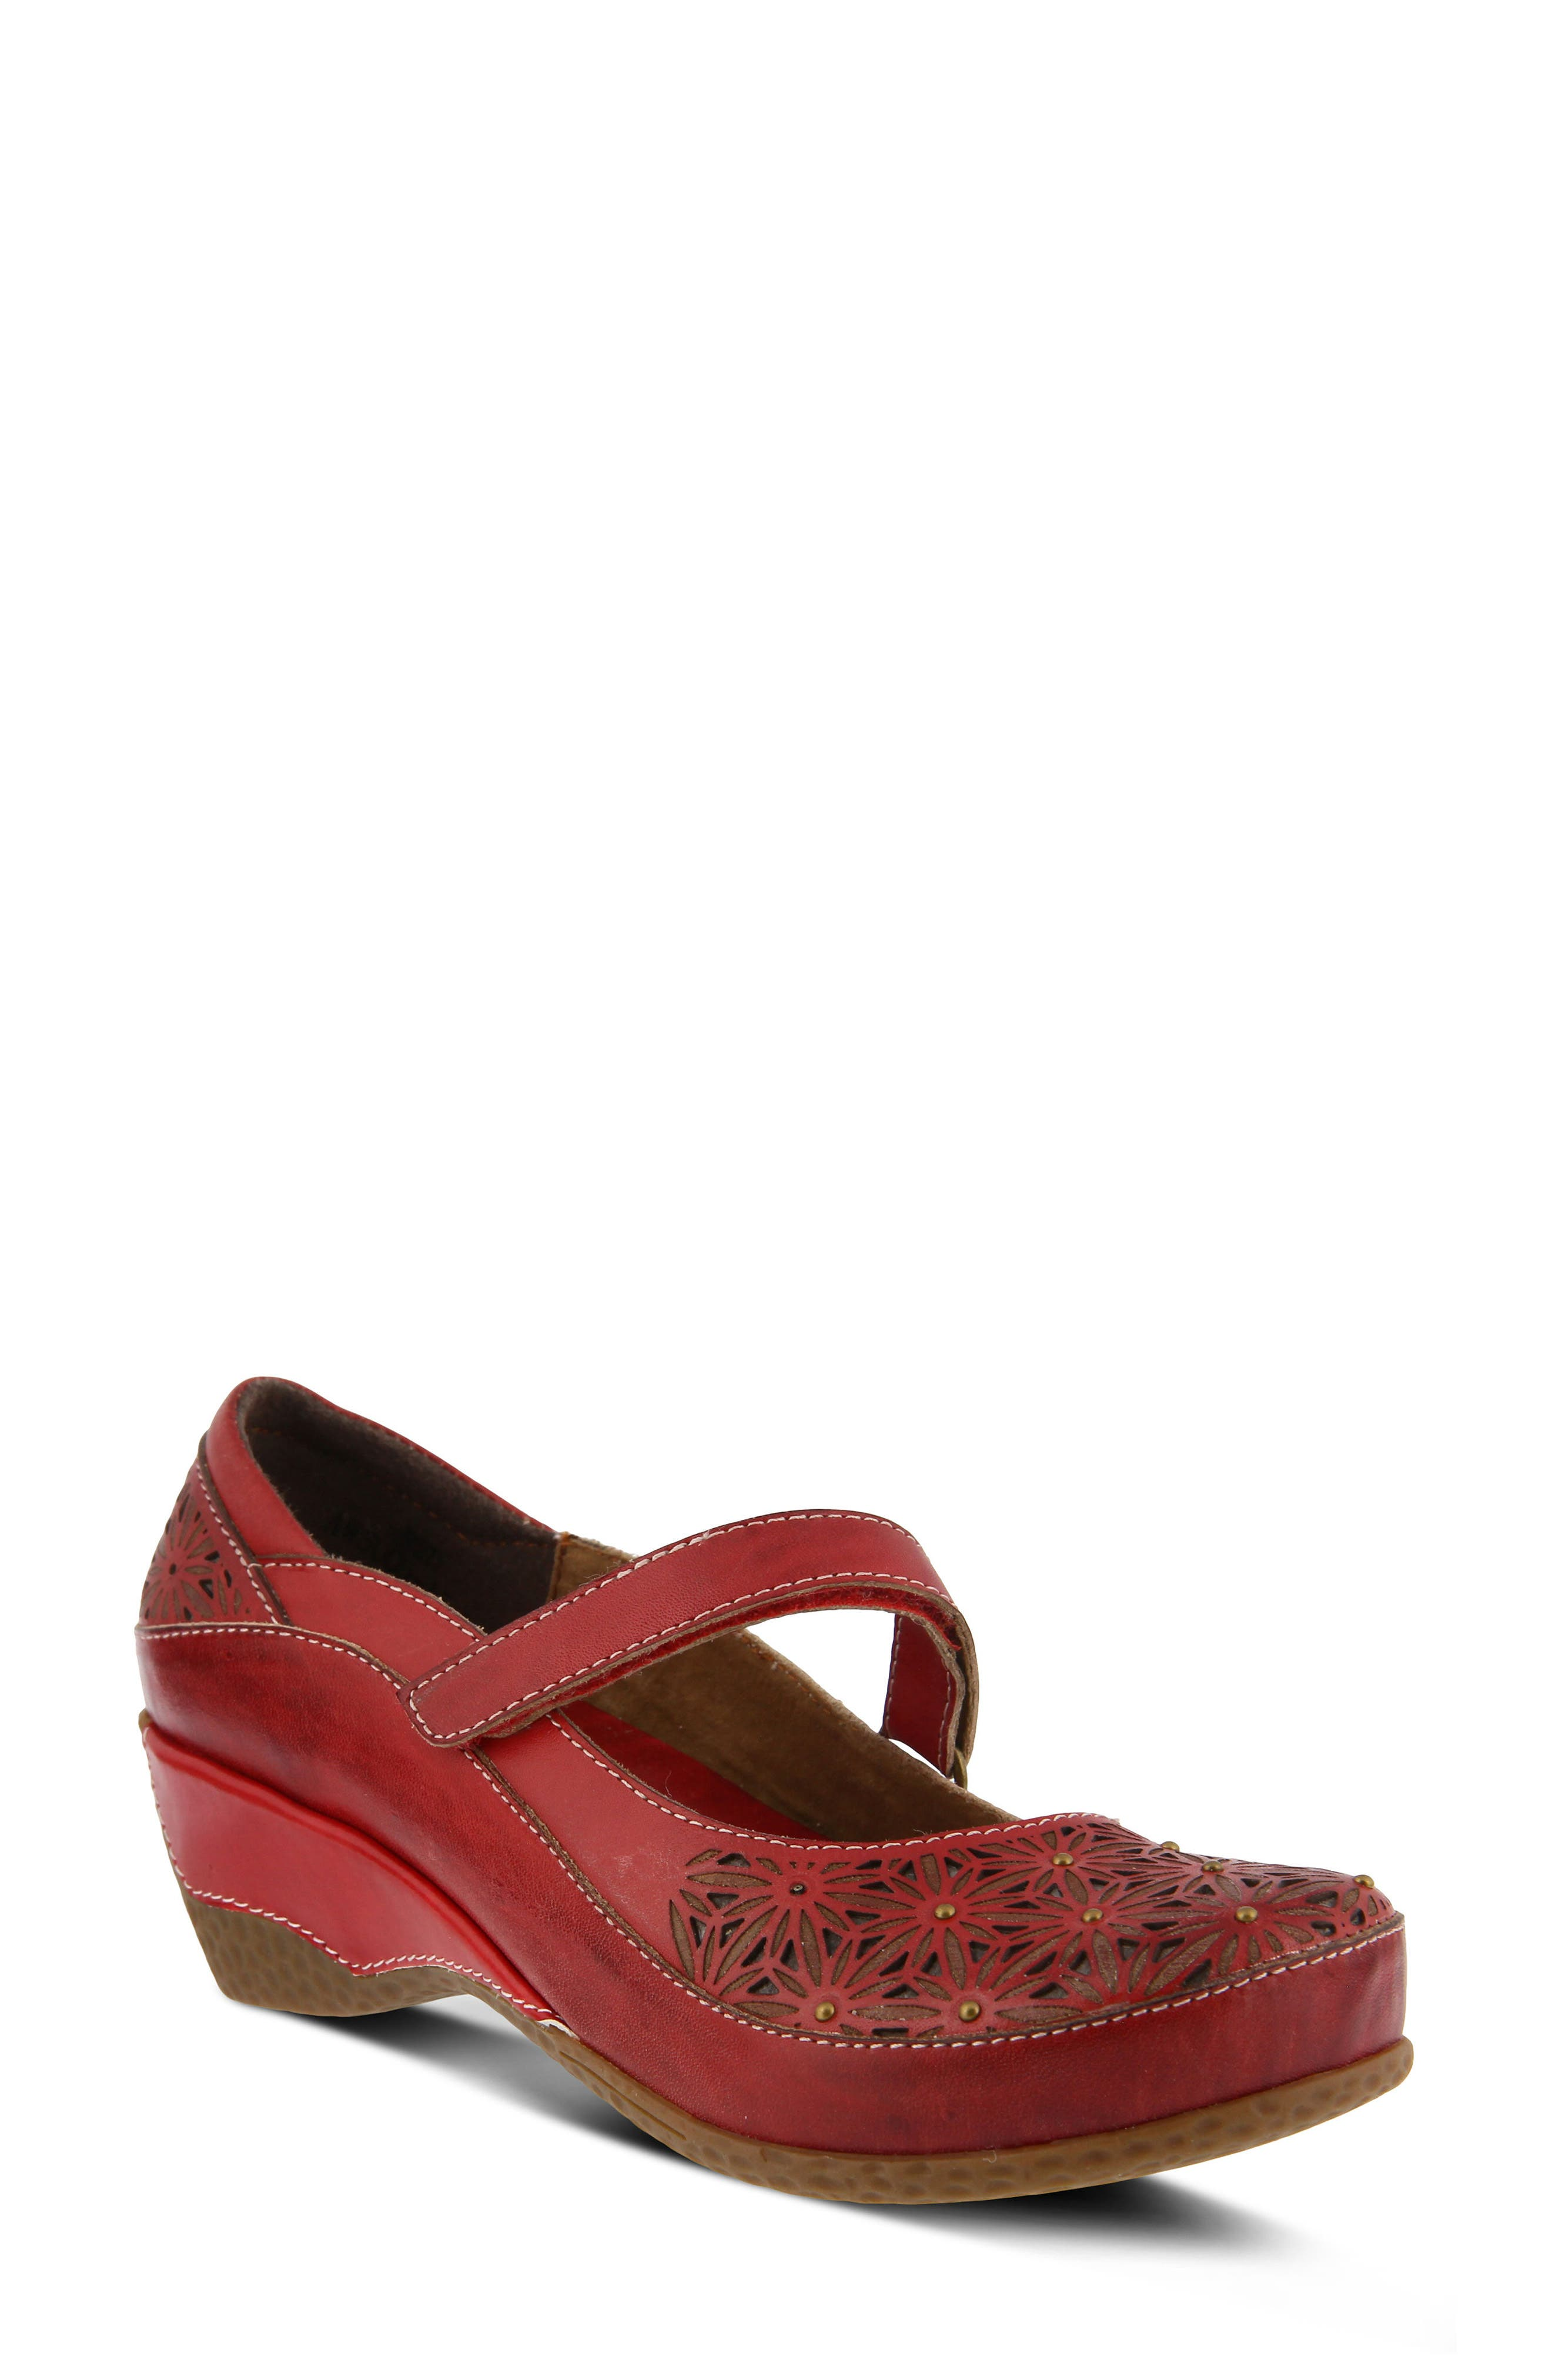 Finlandia Pump,                         Main,                         color, RED LEATHER